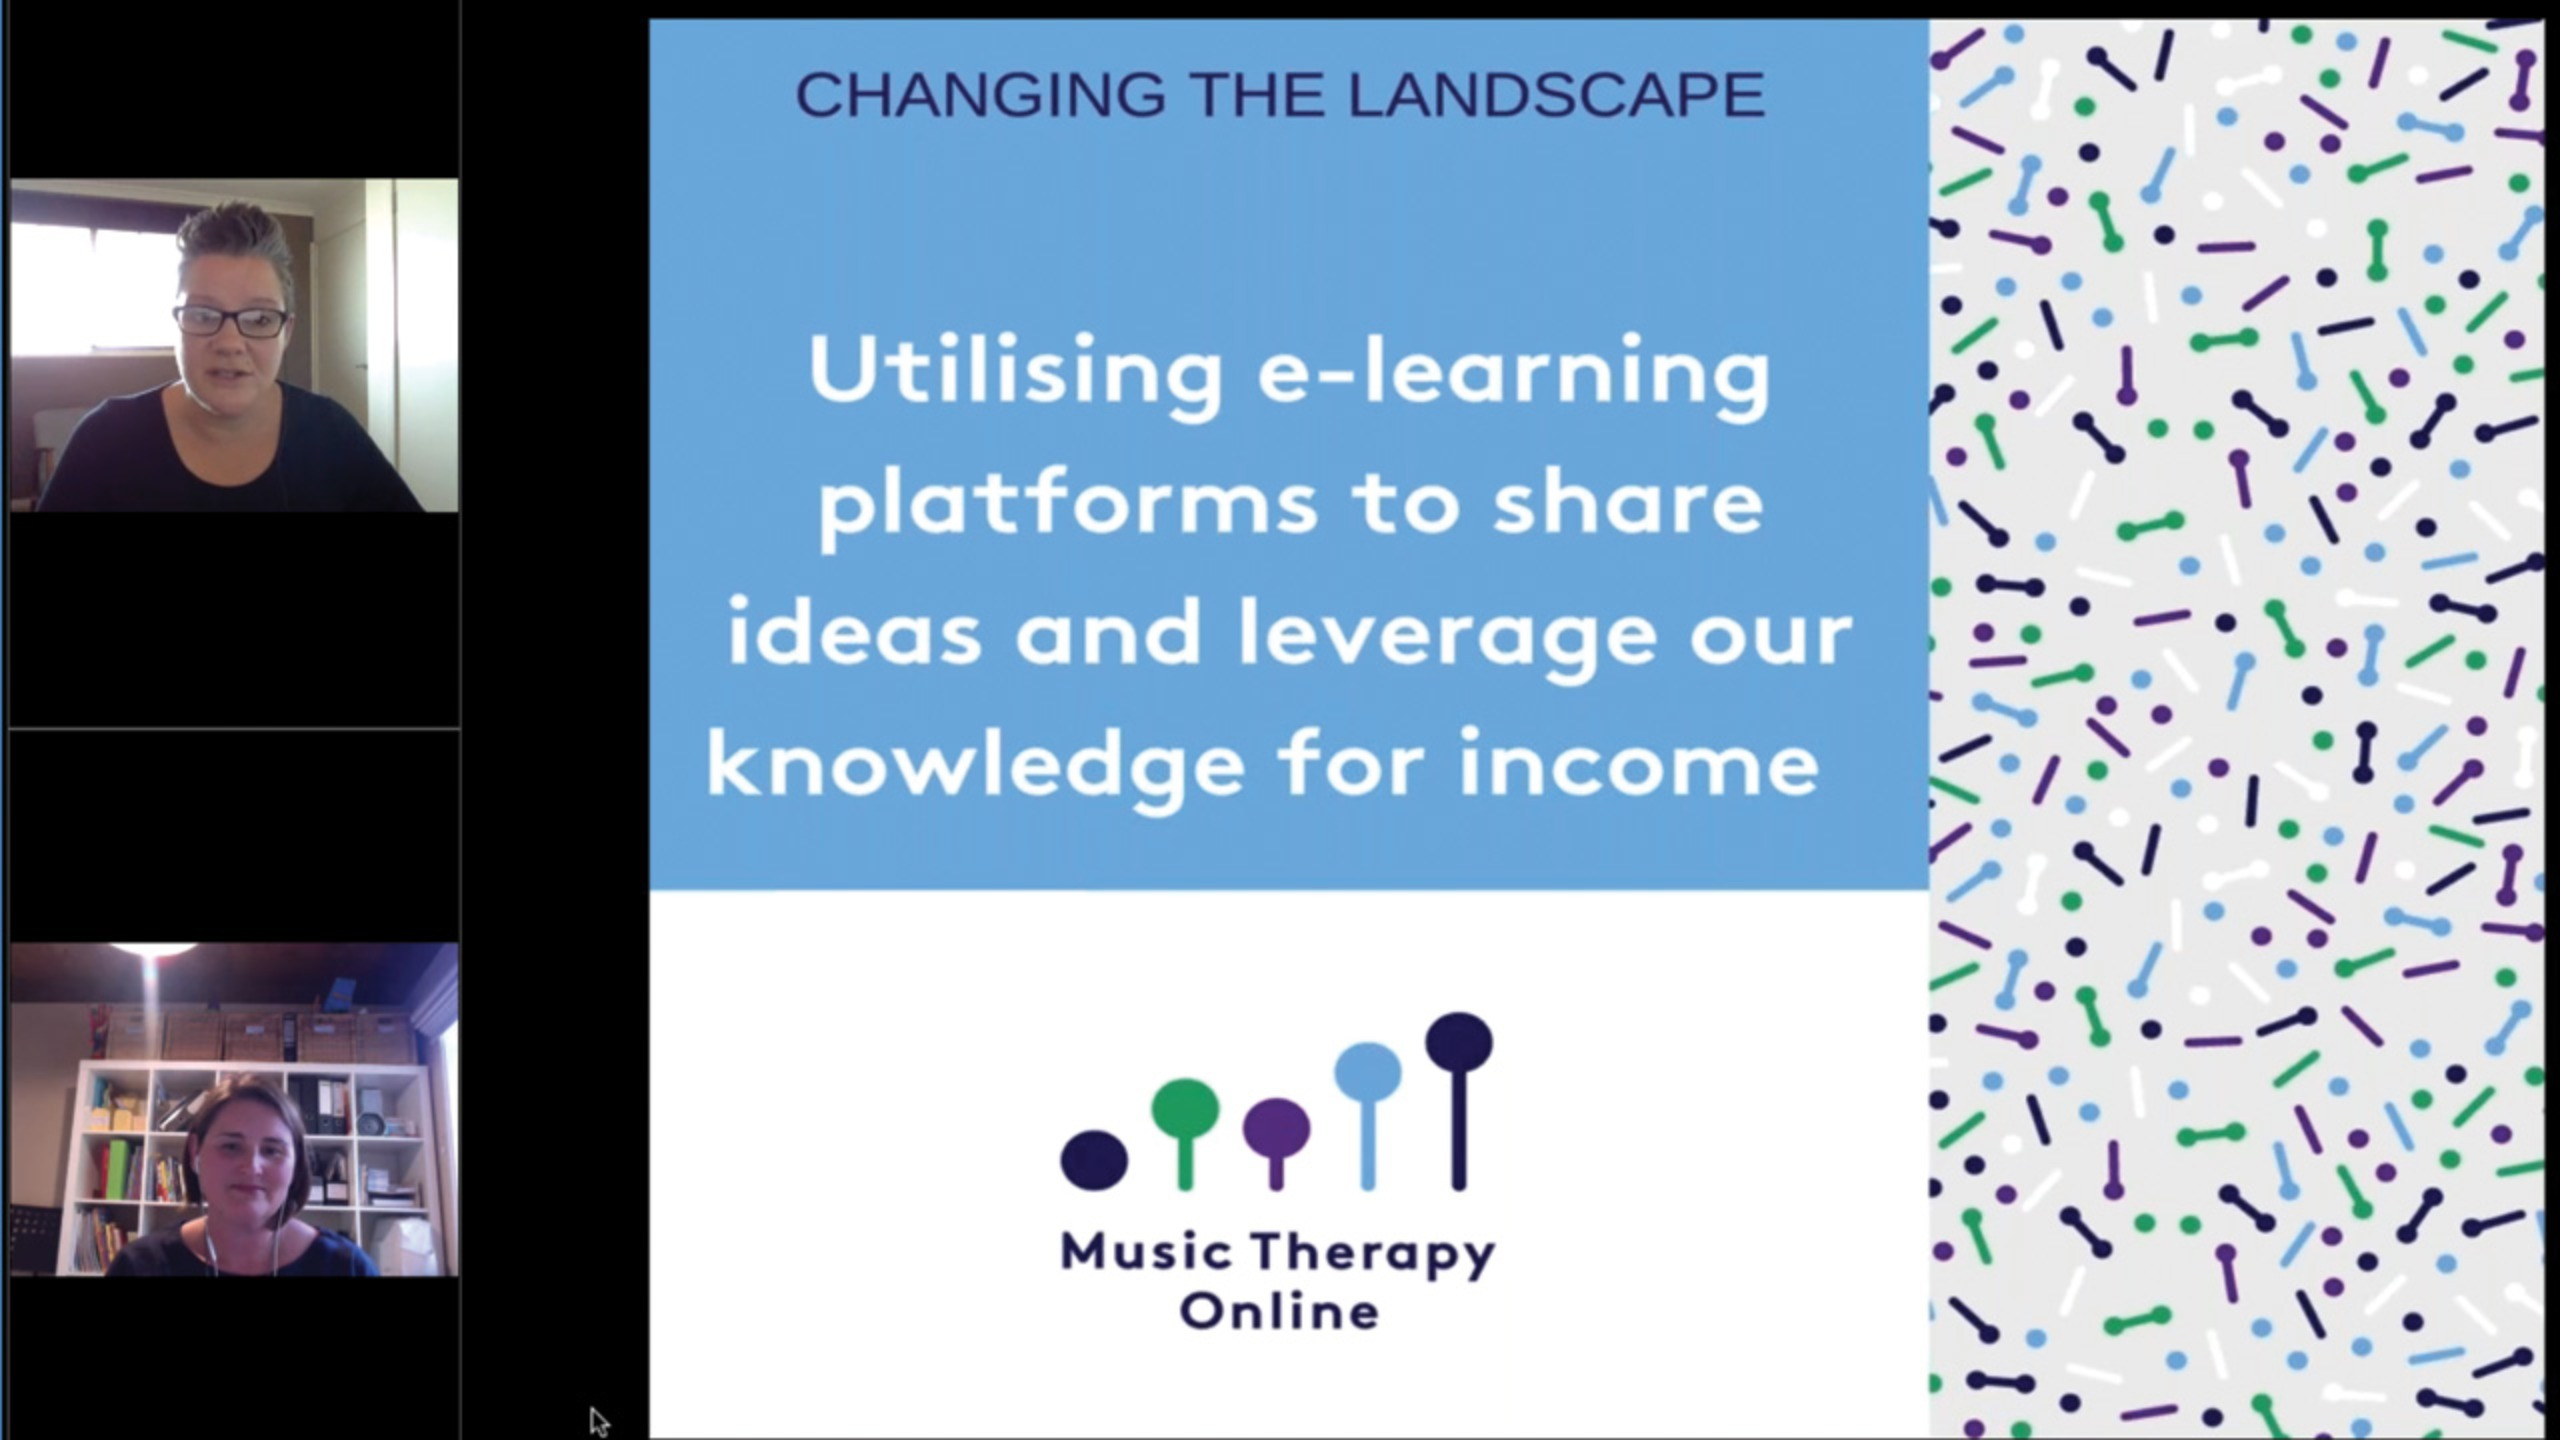 Utilising e-learning platforms to share ideas and leverage our knowledge for income